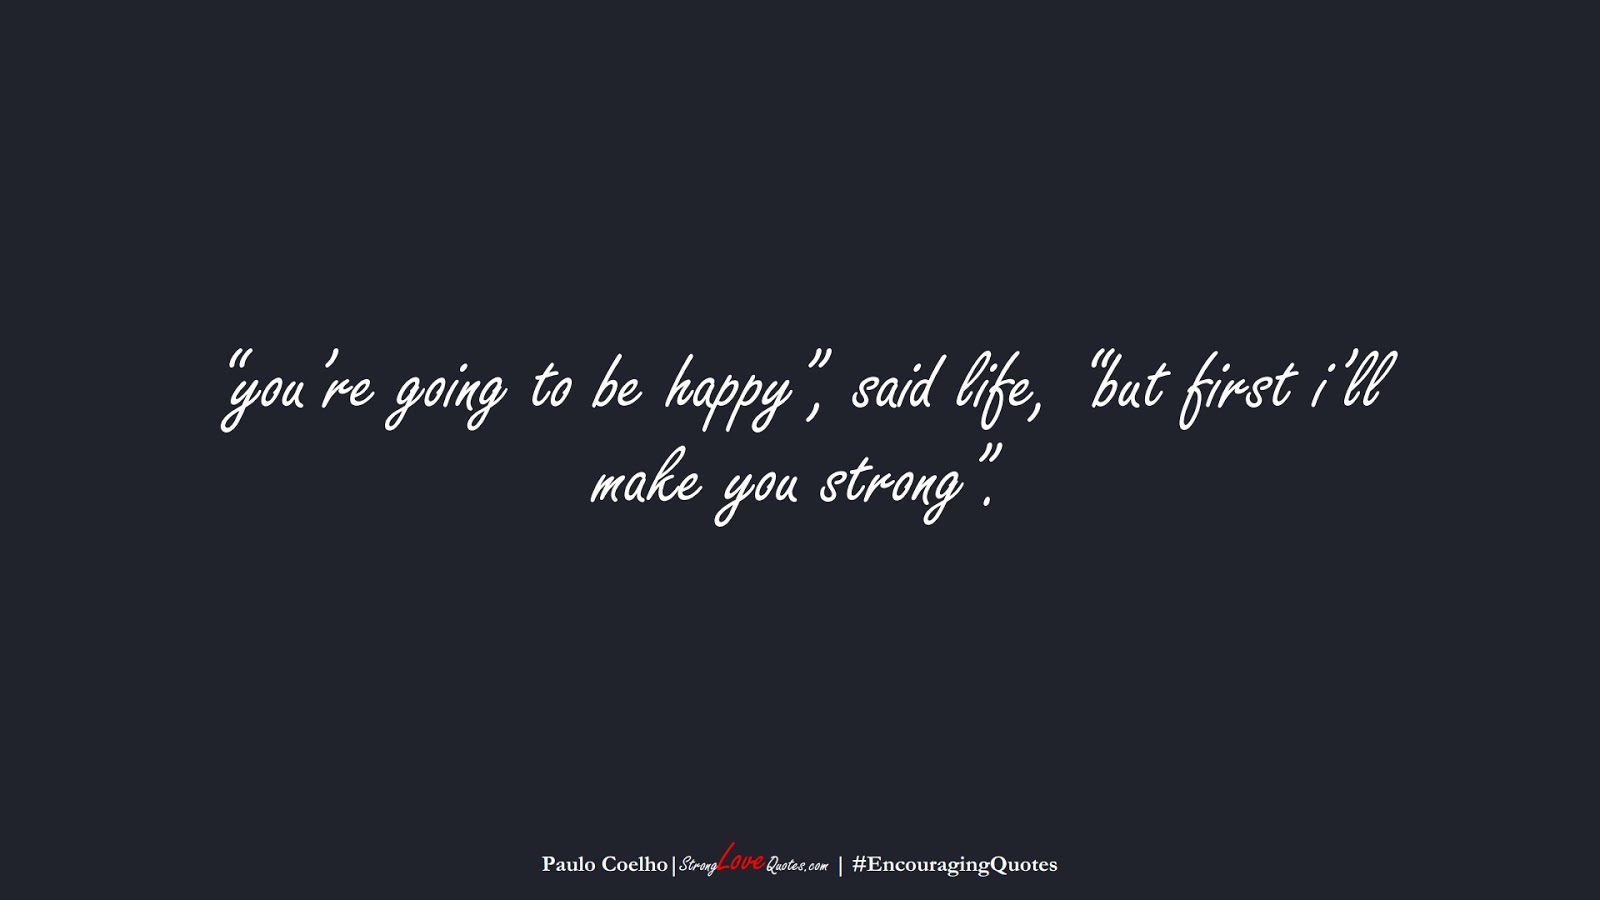 """""""you're going to be happy"""", said life, """"but first i'll make you strong"""". (Paulo Coelho);  #EncouragingQuotes"""